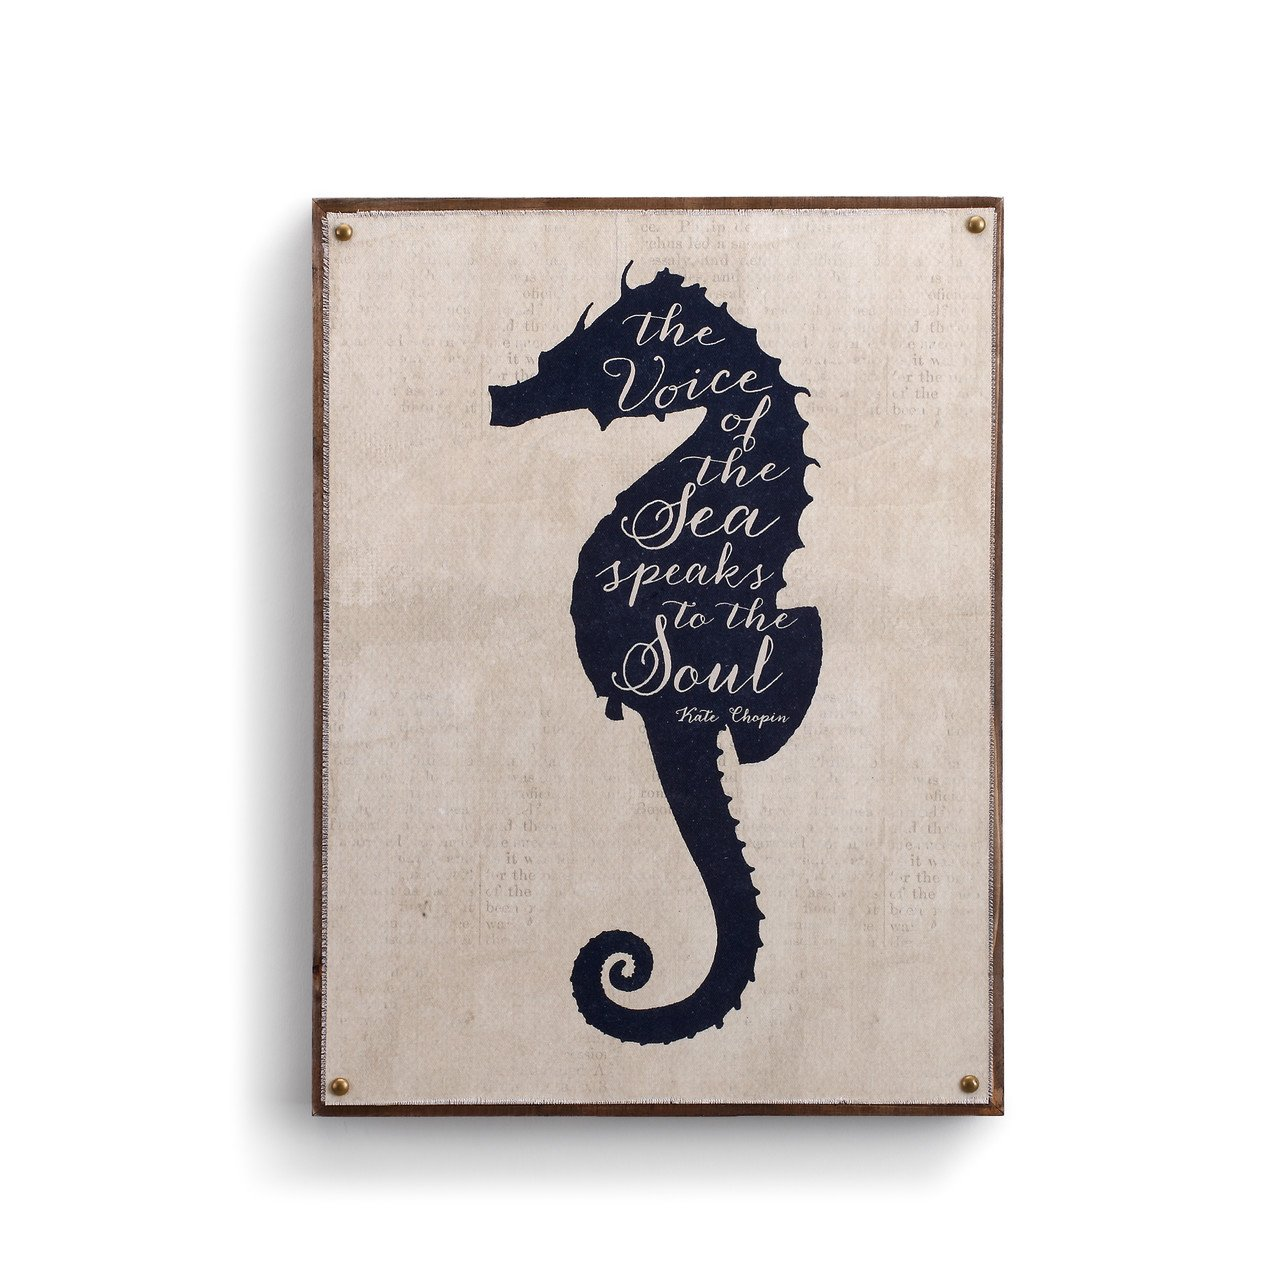 DEMDACO Sea Horse Rustic White 16 x 12 Wood Composite Canvas Wall Art Plaque Sign